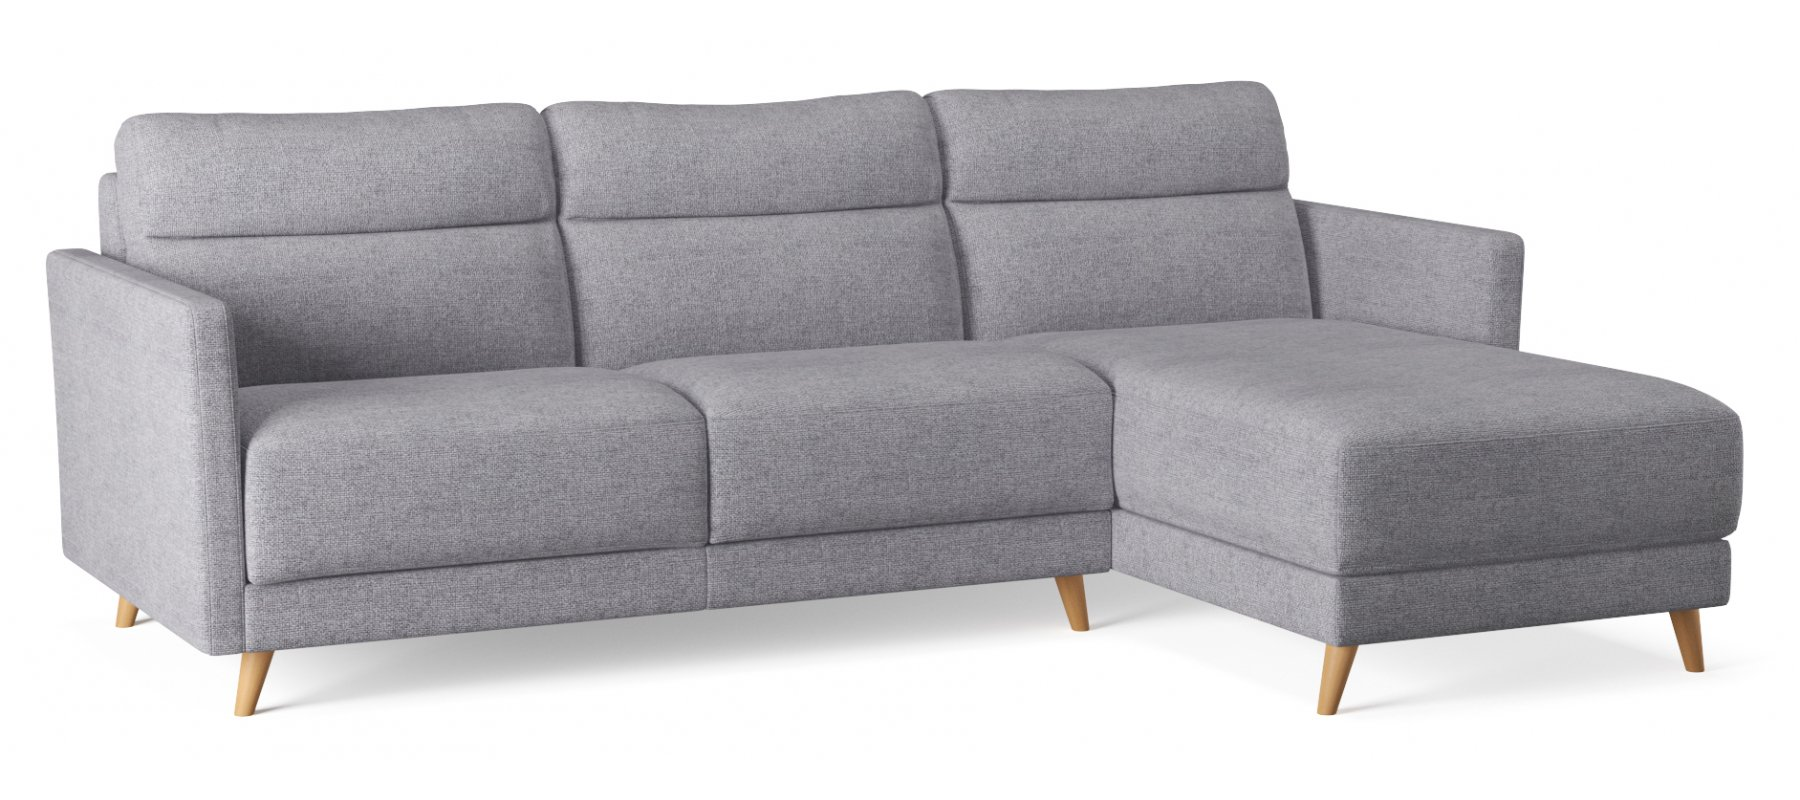 Canapé convertible 3 places PAOLA - Largeur 180 cm - Couchage 140 cm